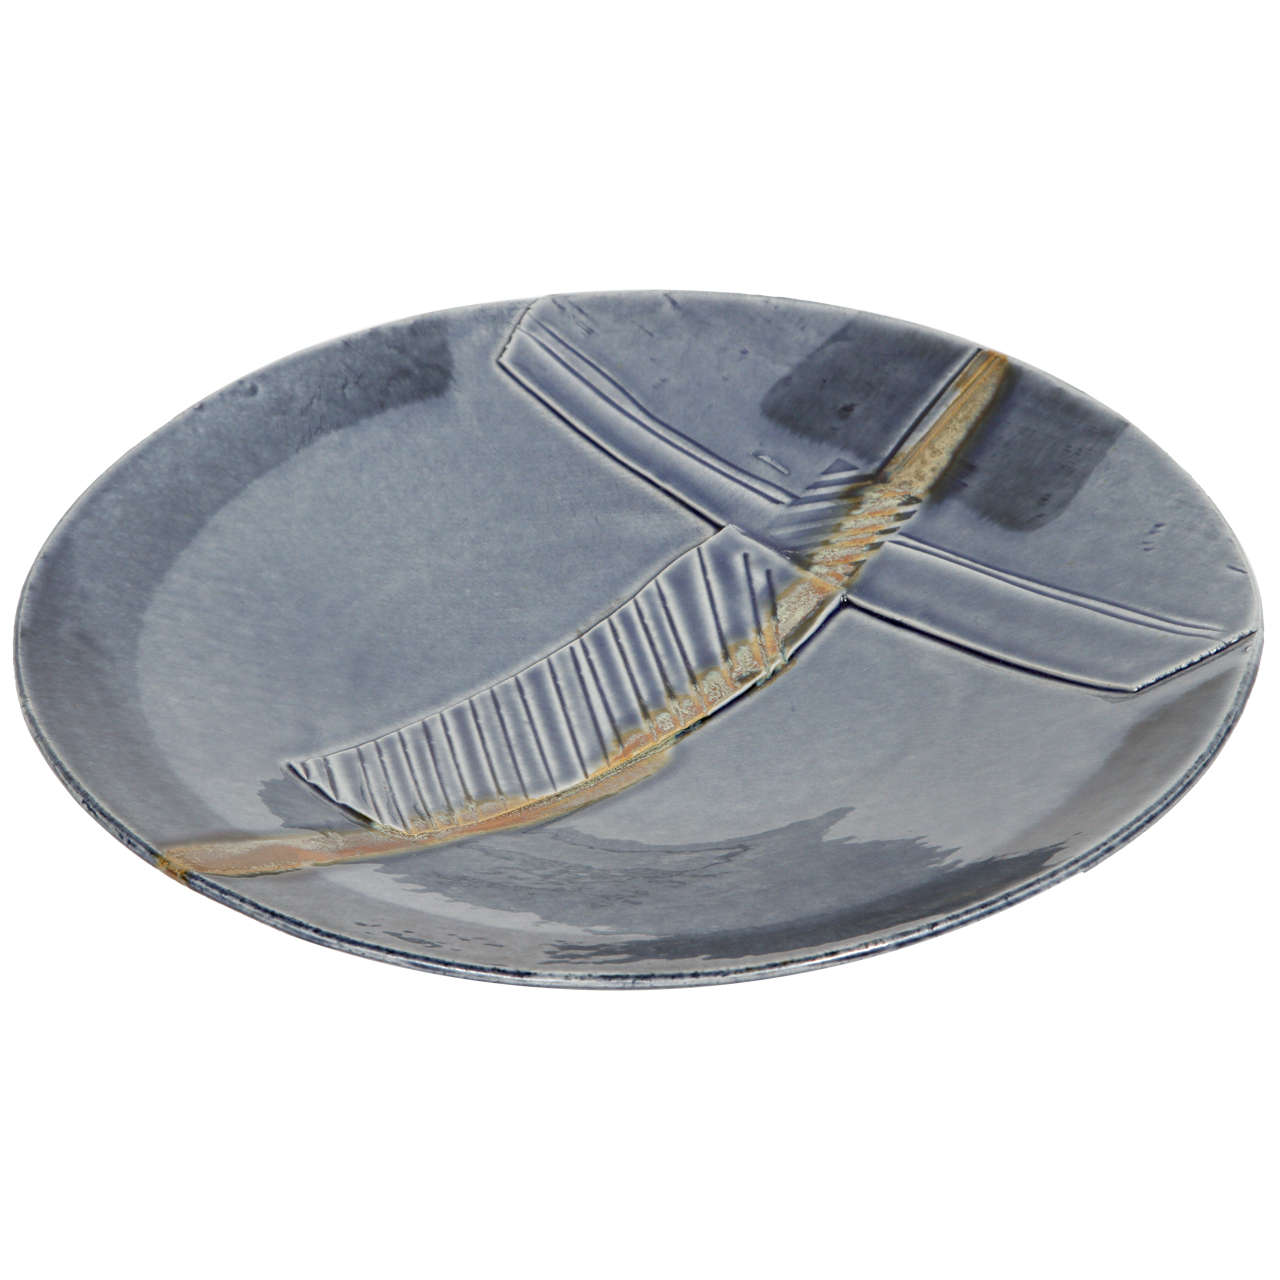 Handcrafted Art Studio Large Blue Ceramic Charger with Modern Design